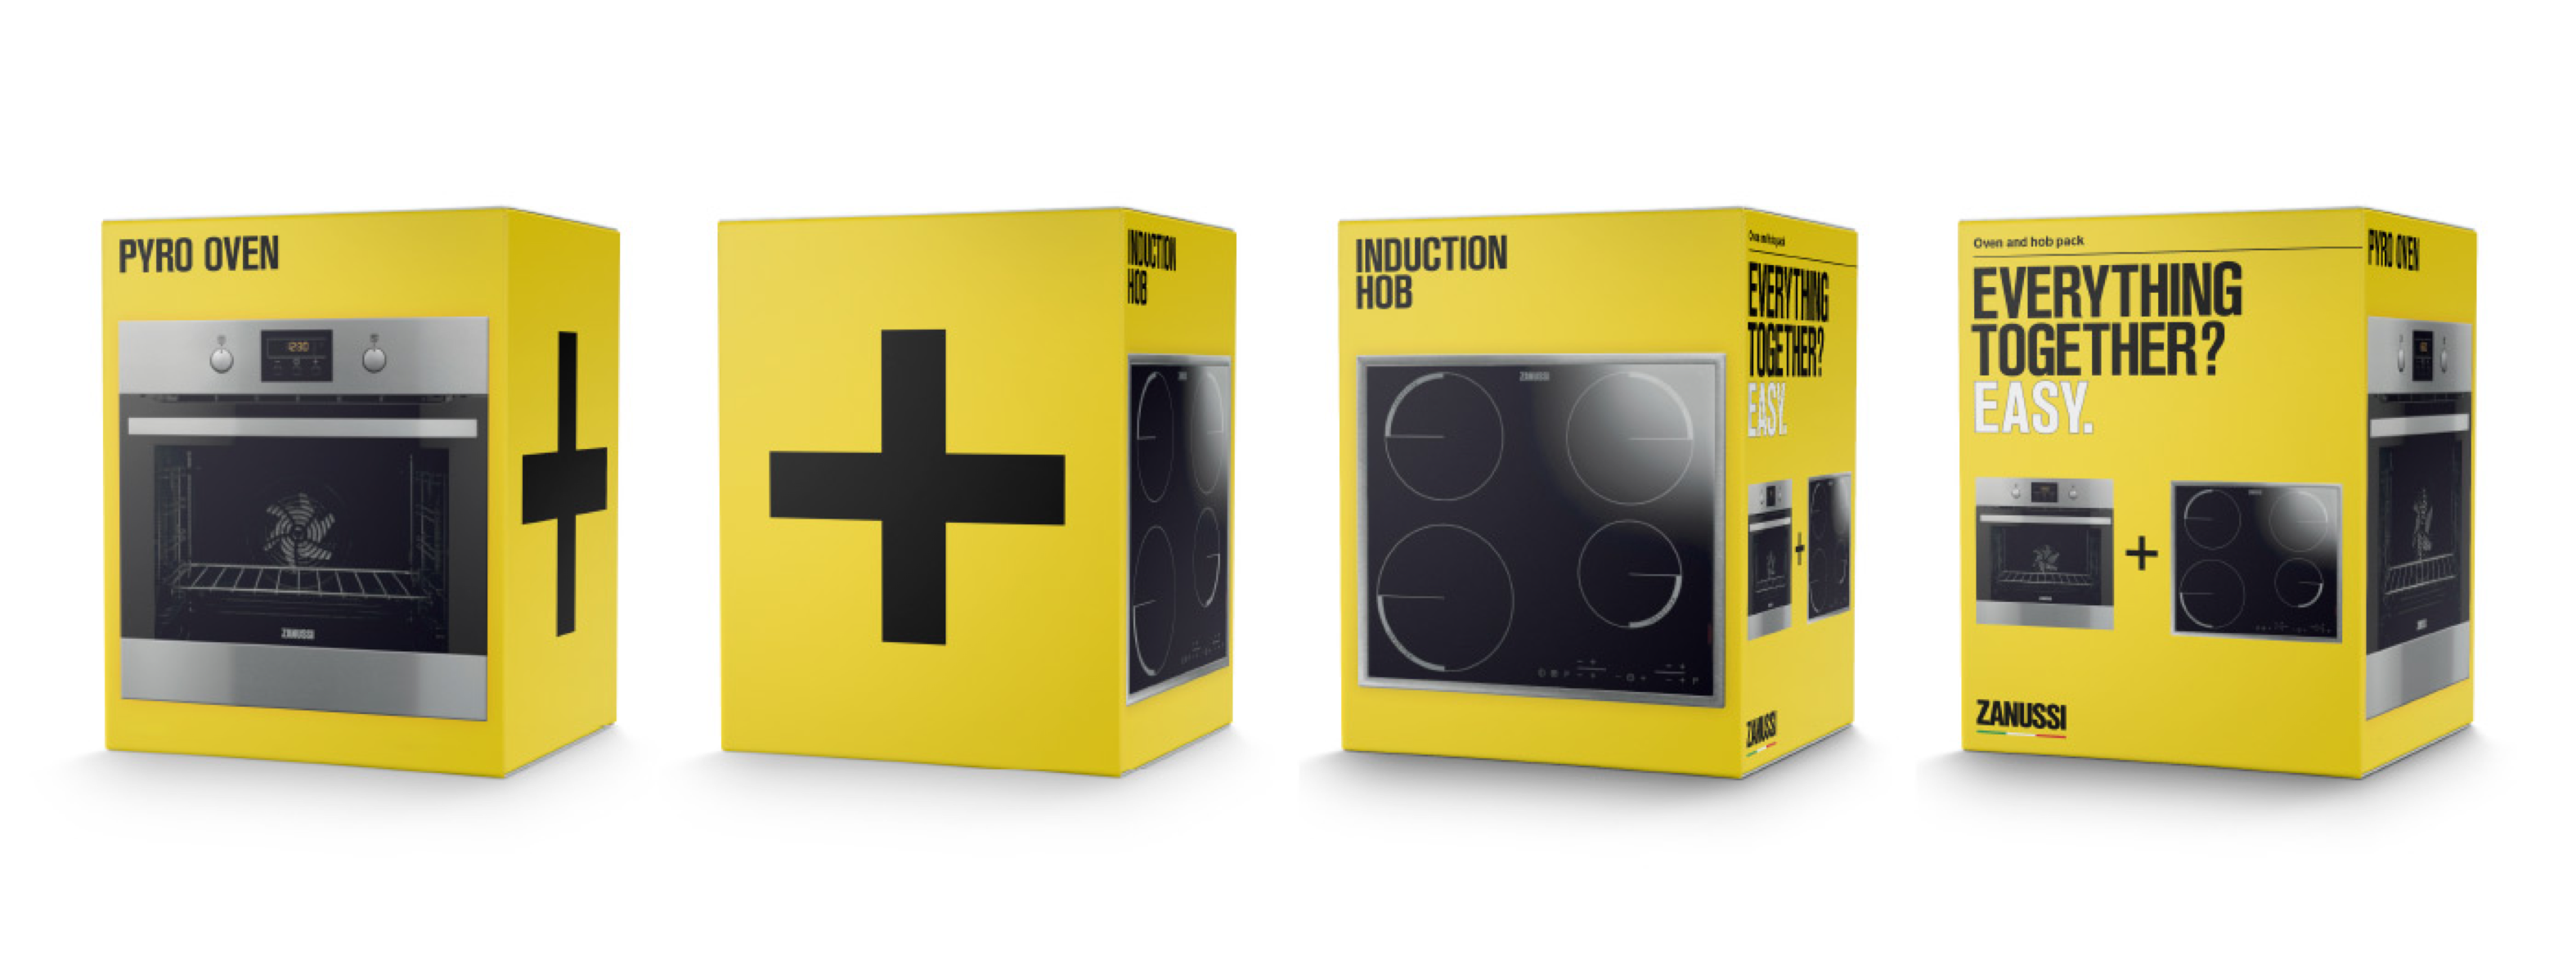 Zanussi, packaging, box, design, yellow